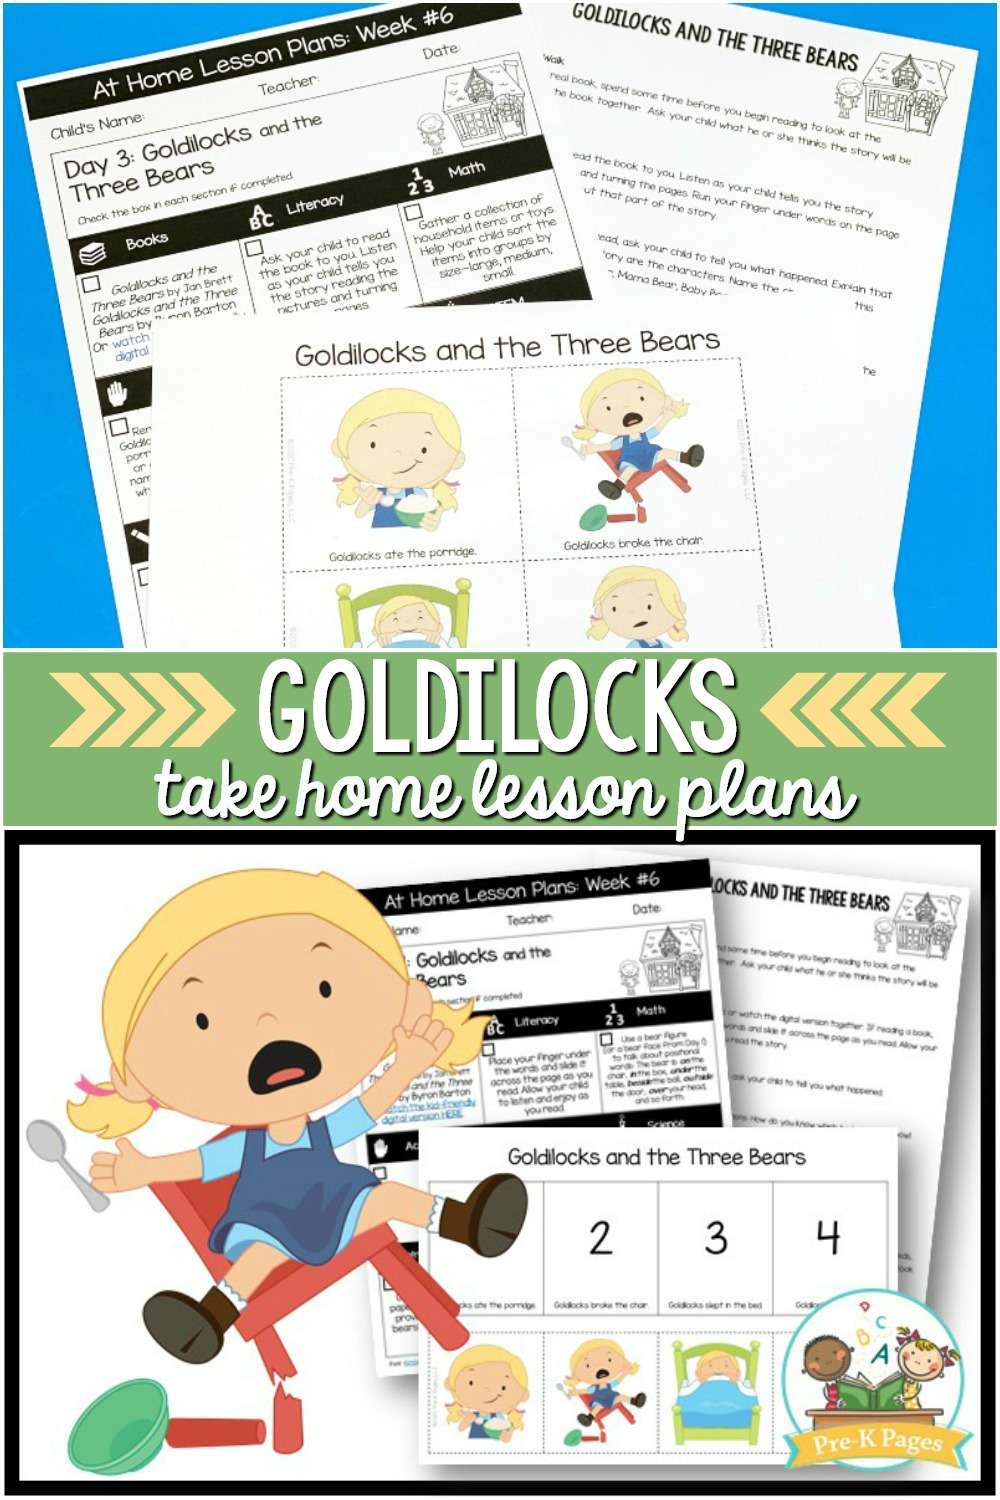 Goldilocks and the Three Bears Lesson Plans